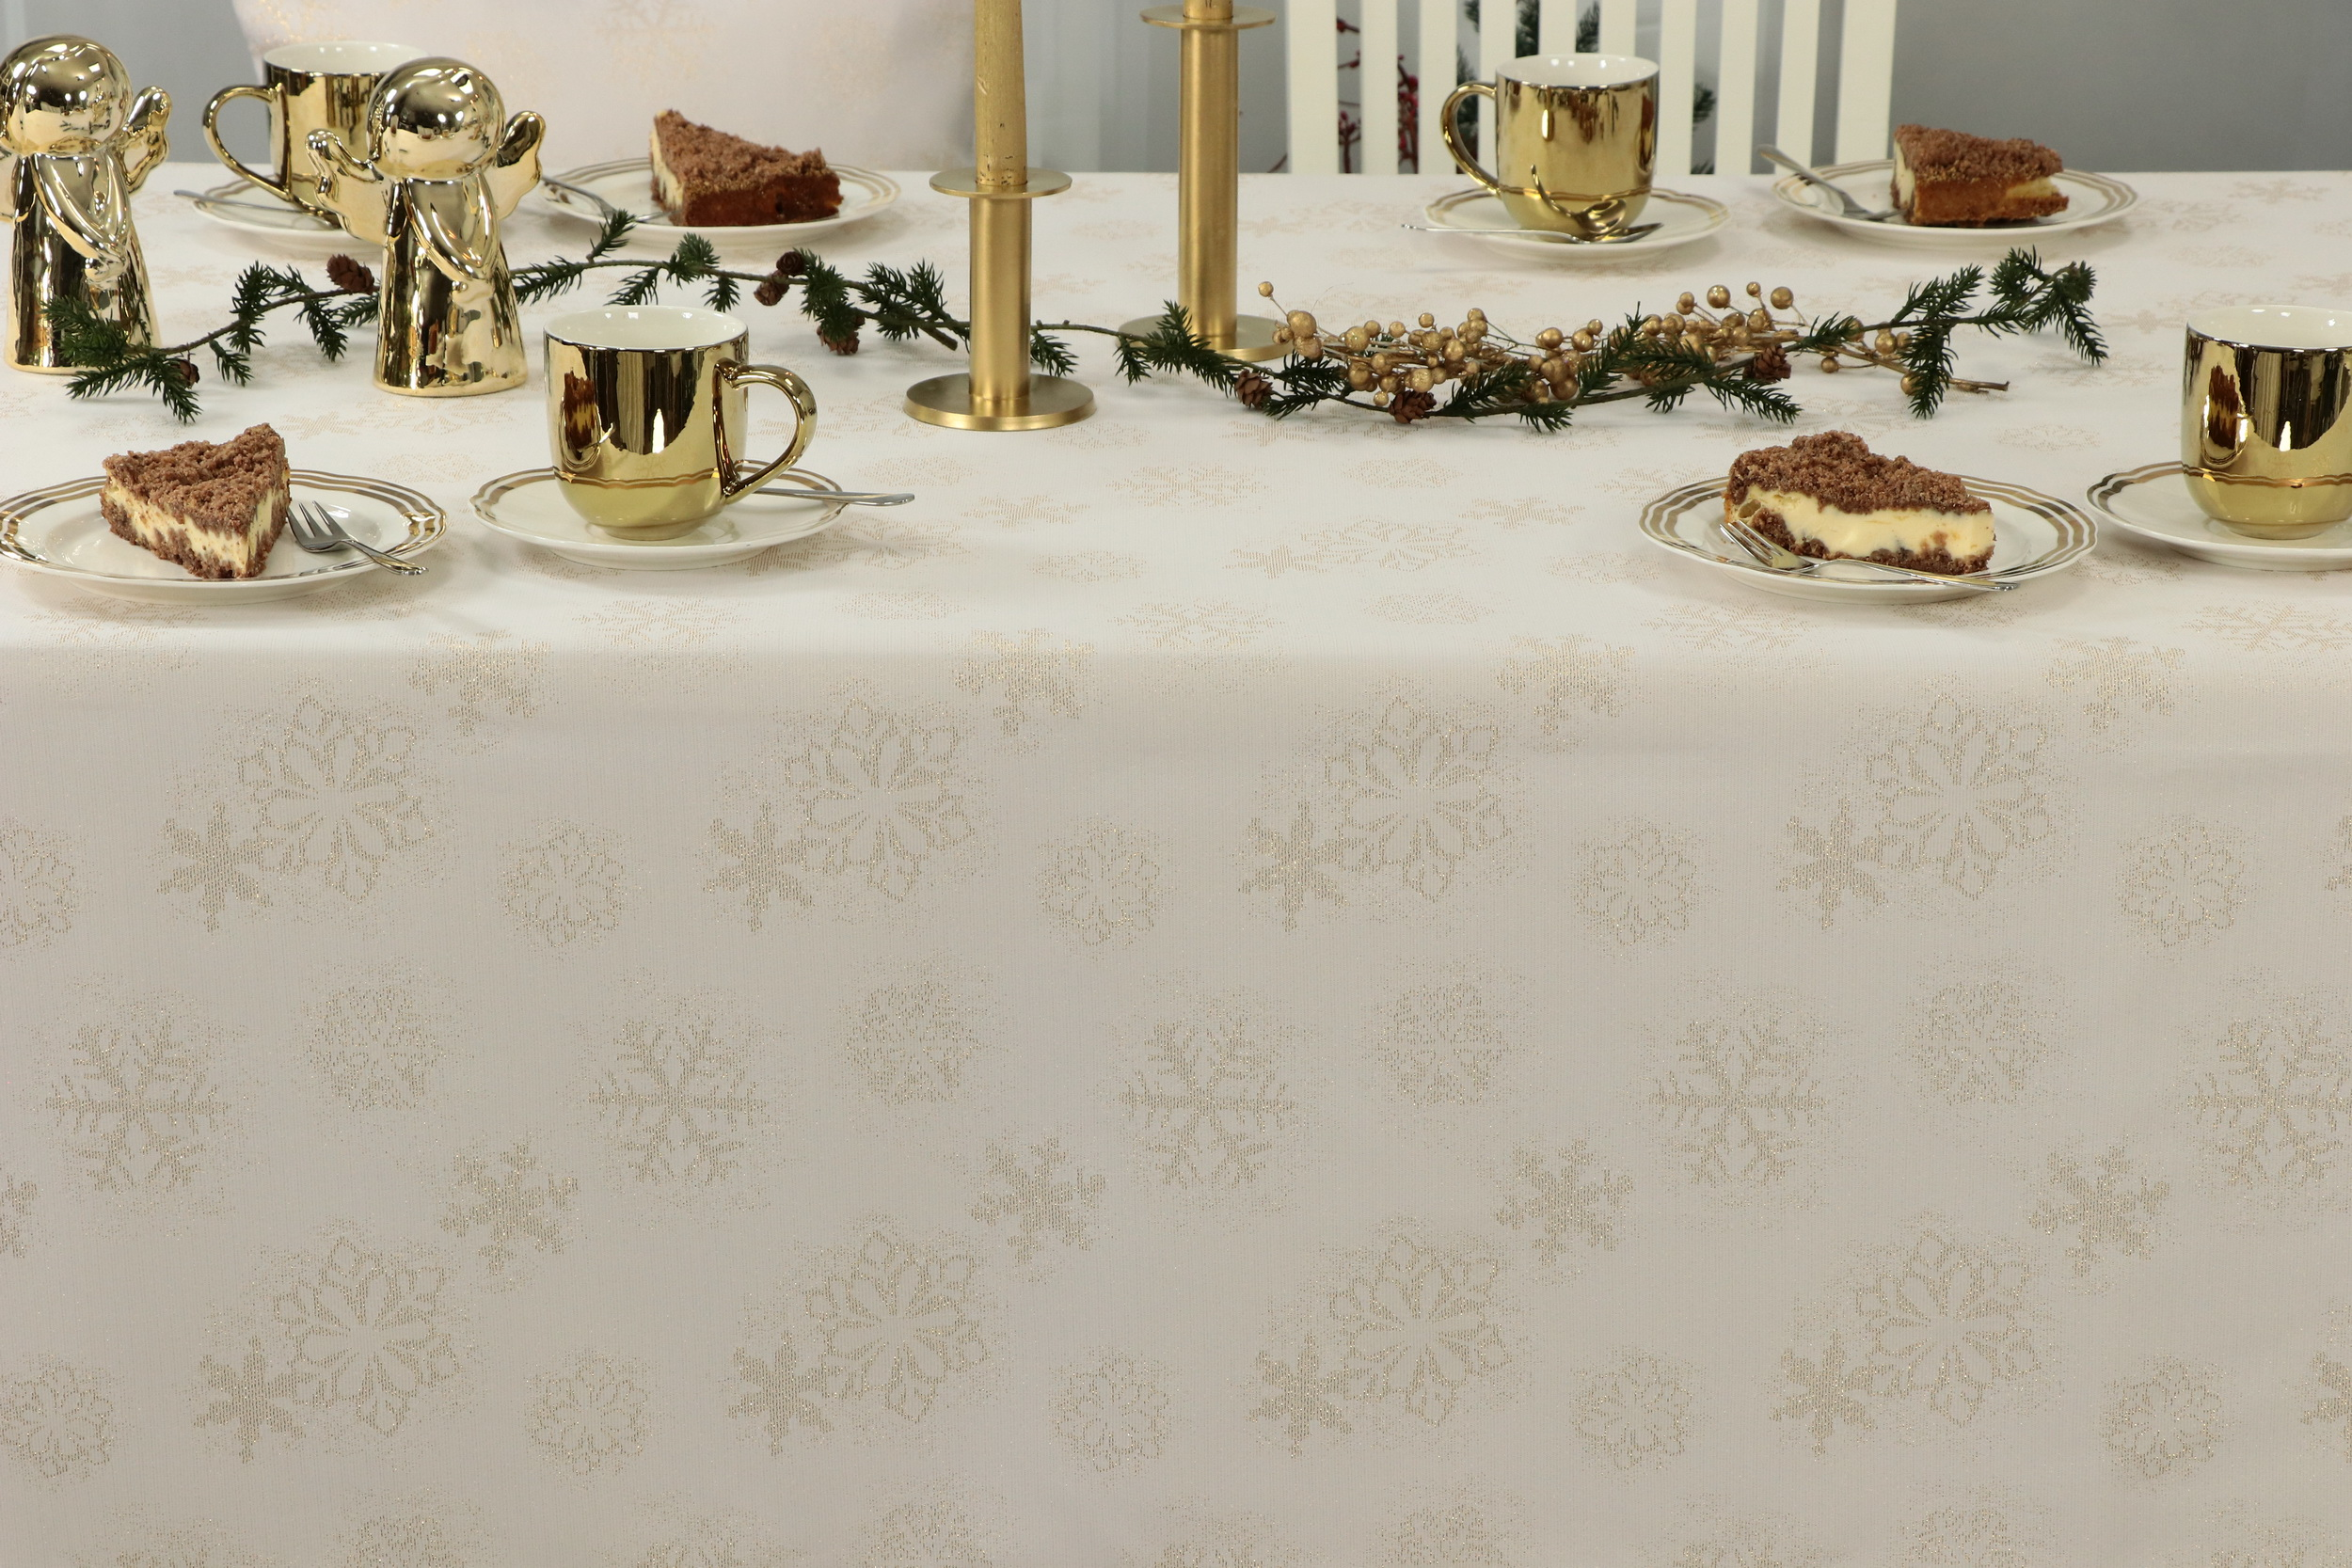 weihnachtstischdecke advent champagner muster gold breite. Black Bedroom Furniture Sets. Home Design Ideas